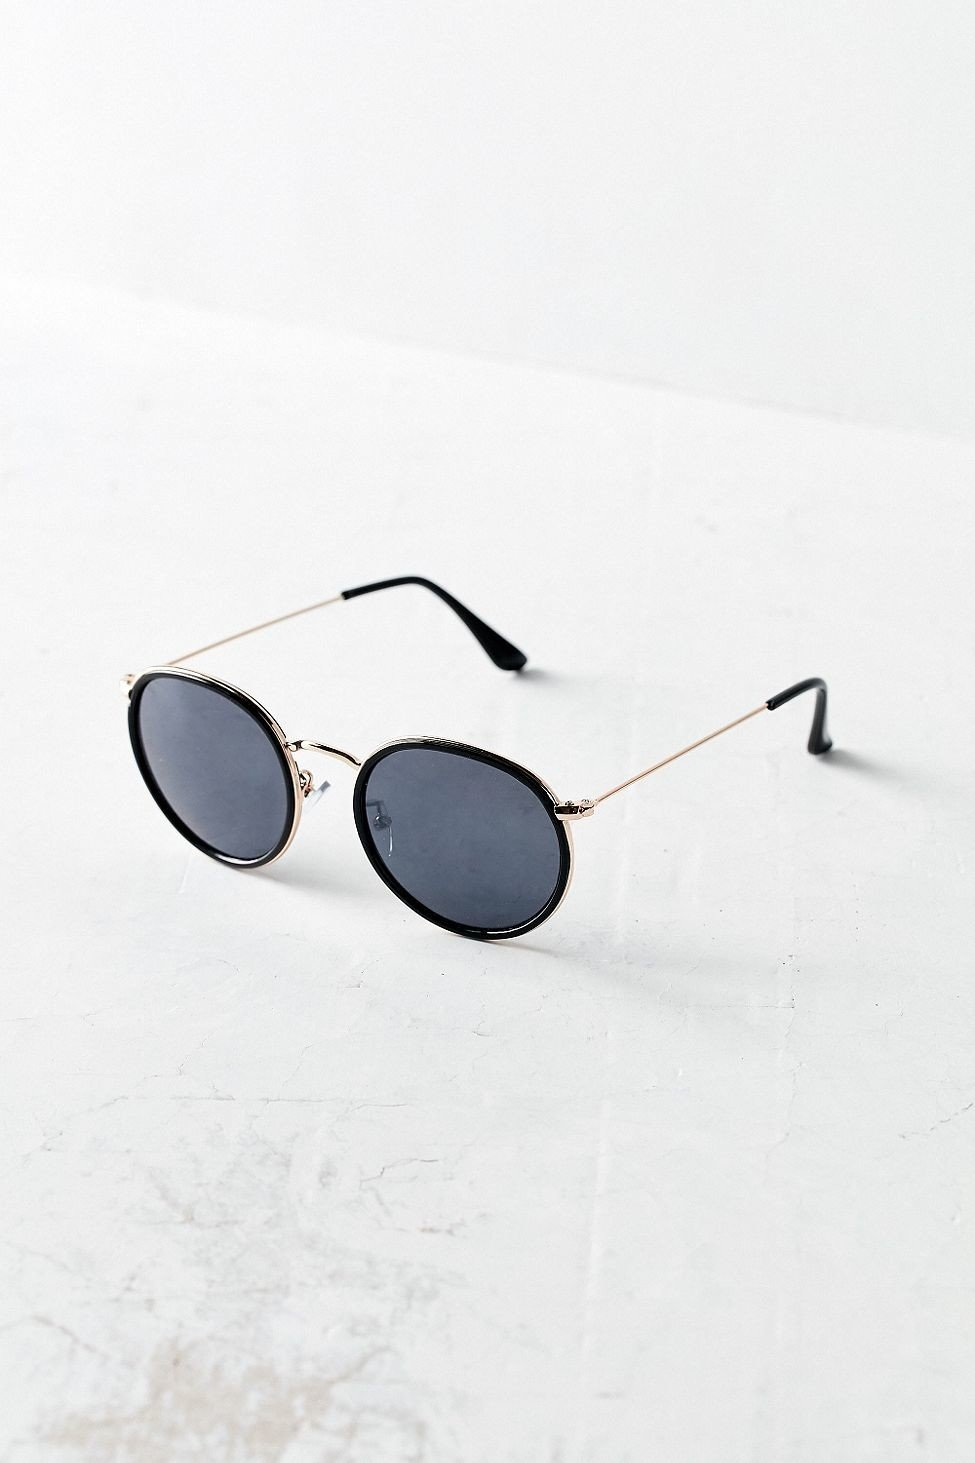 Spring Travel Style + Design Summer Travel Travel Shop eyewear sunglasses vision care glasses goggles product design product font brand rectangle